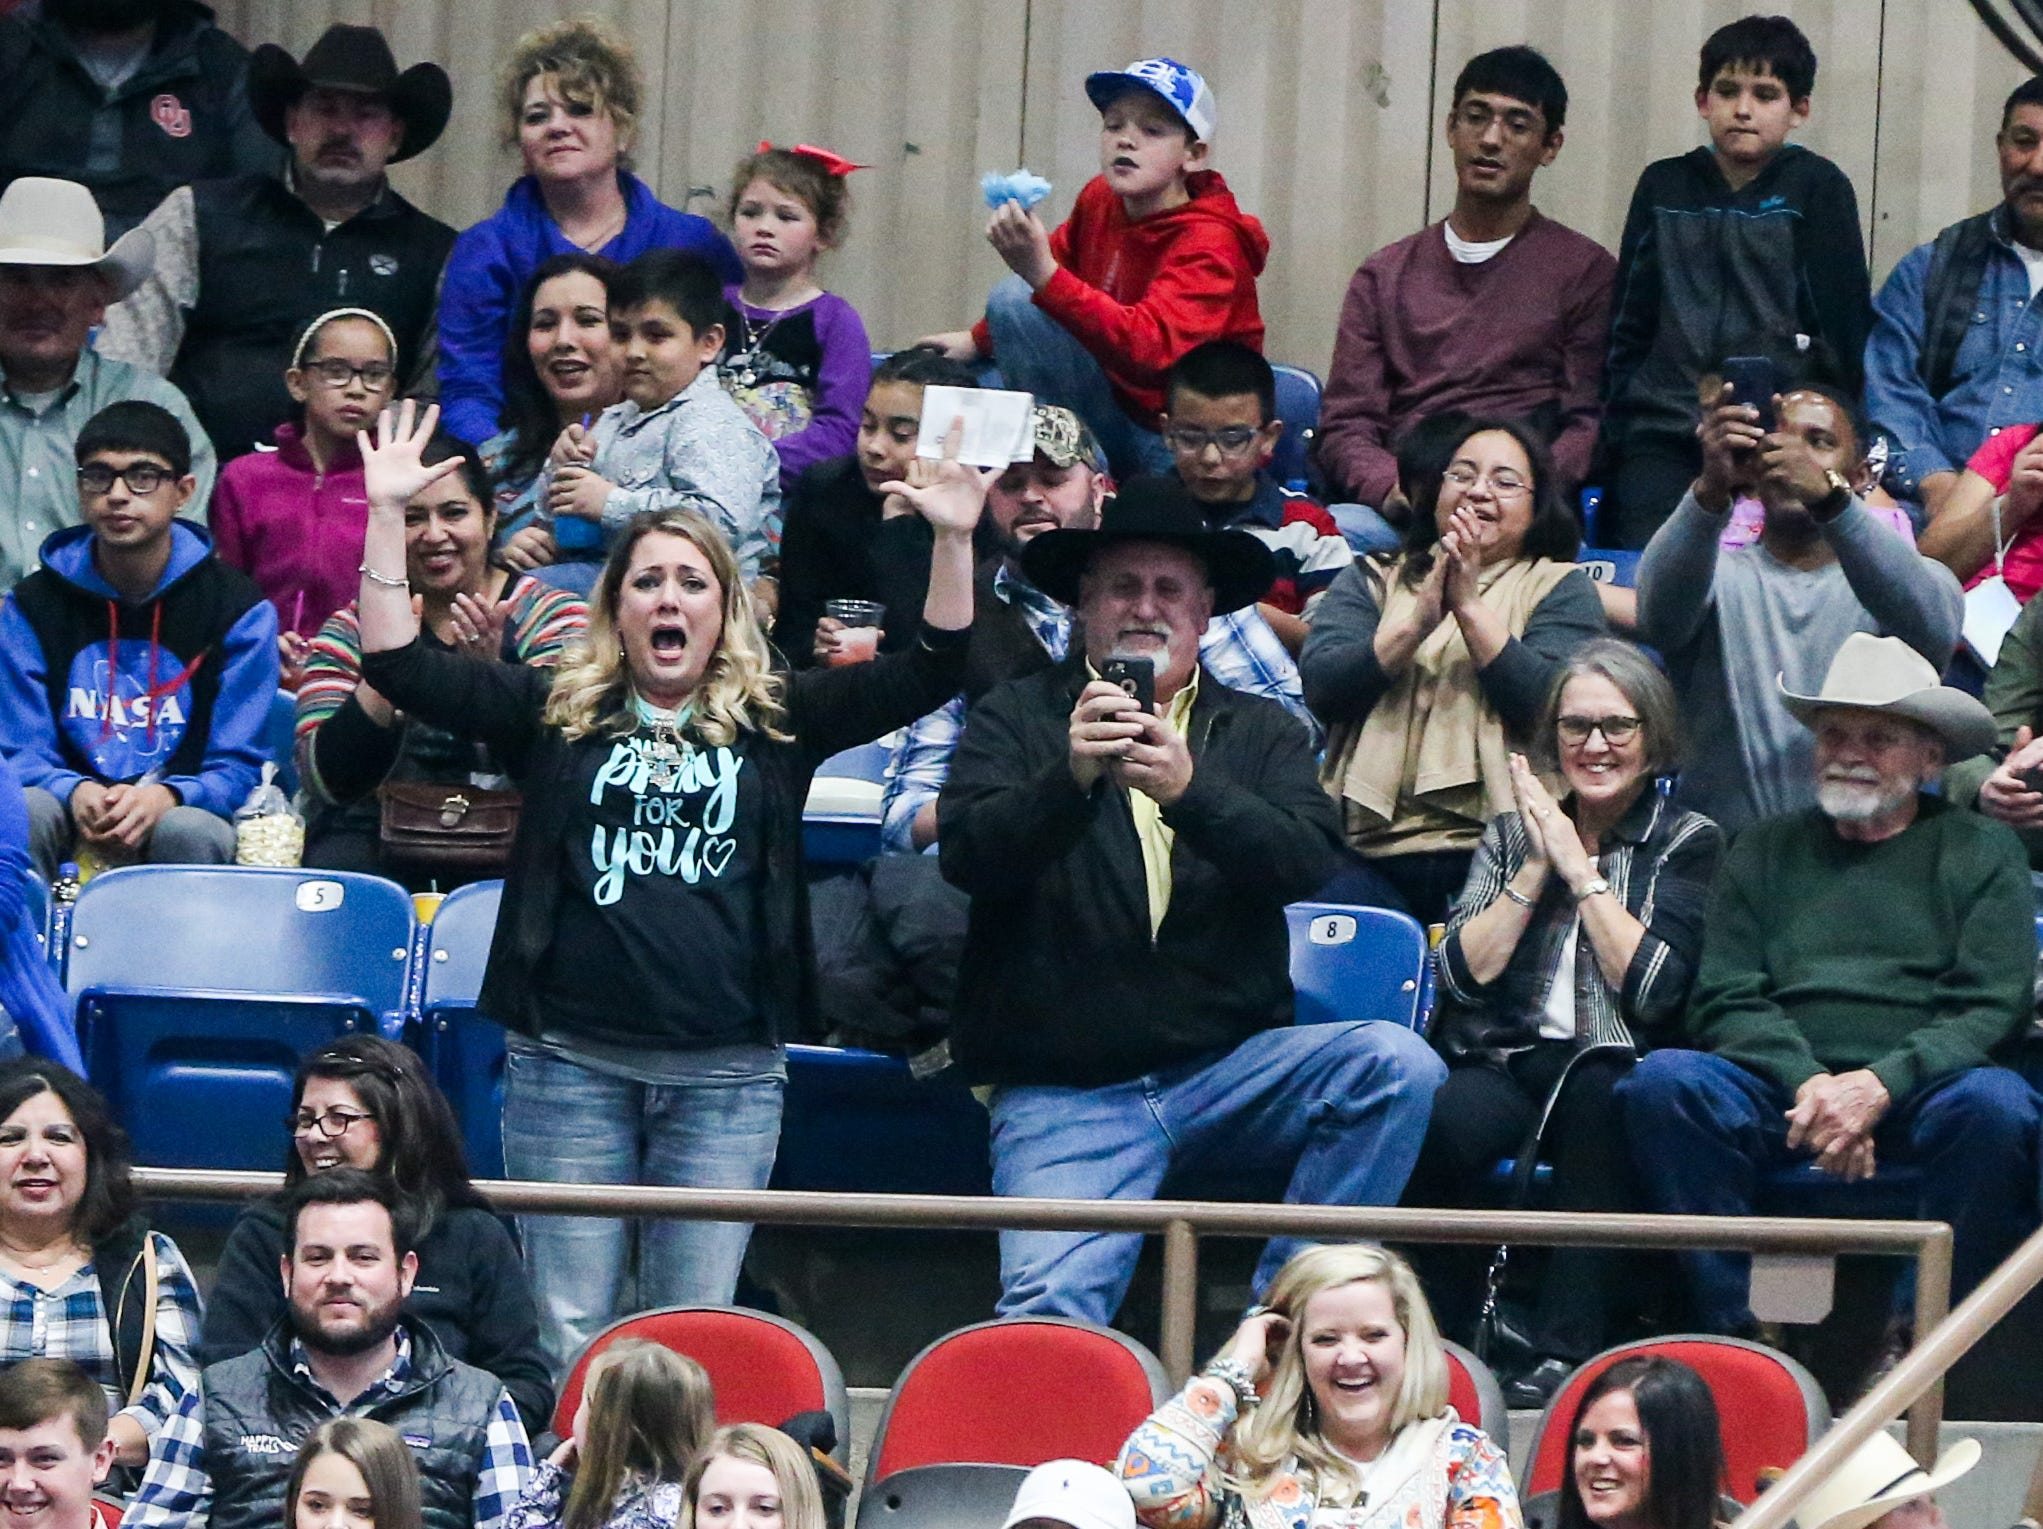 Families cheer on their mutton bustin' kids during the San Angelo Stock Show & Rodeo matinee show Sunday, Feb. 10, 2019, at Foster Communications Coliseum.